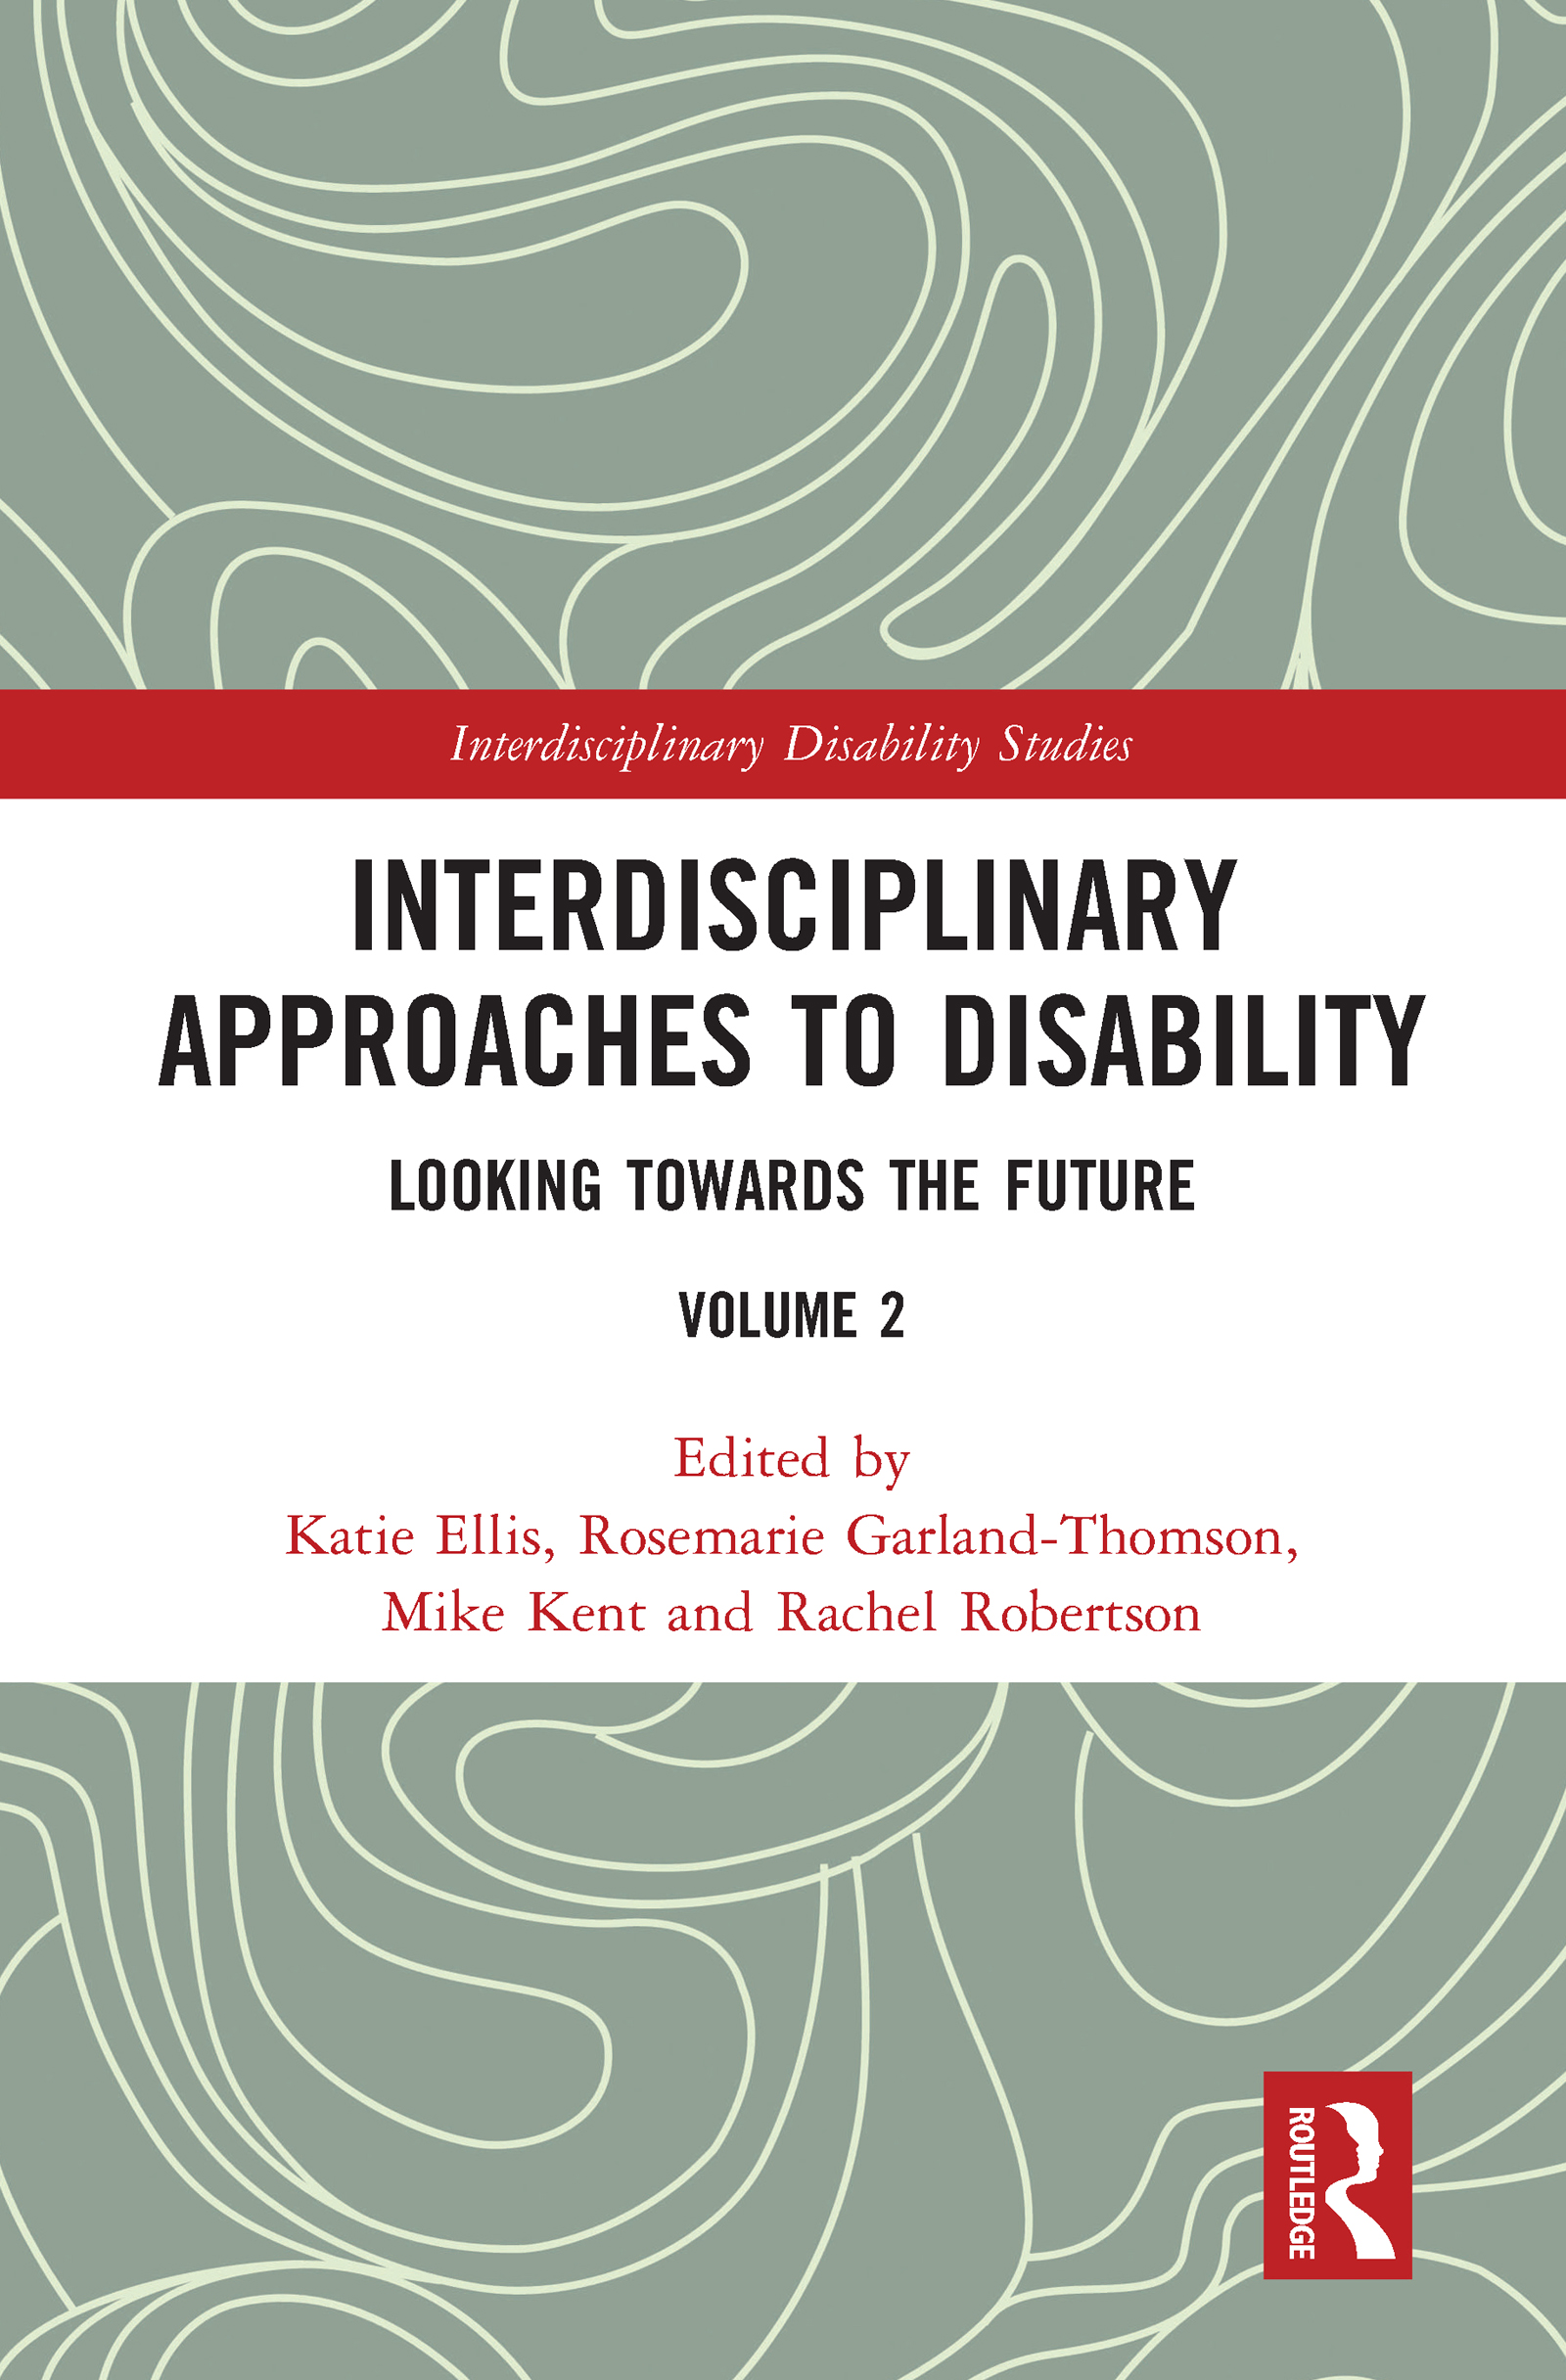 Interdisciplinary Approaches to Disability